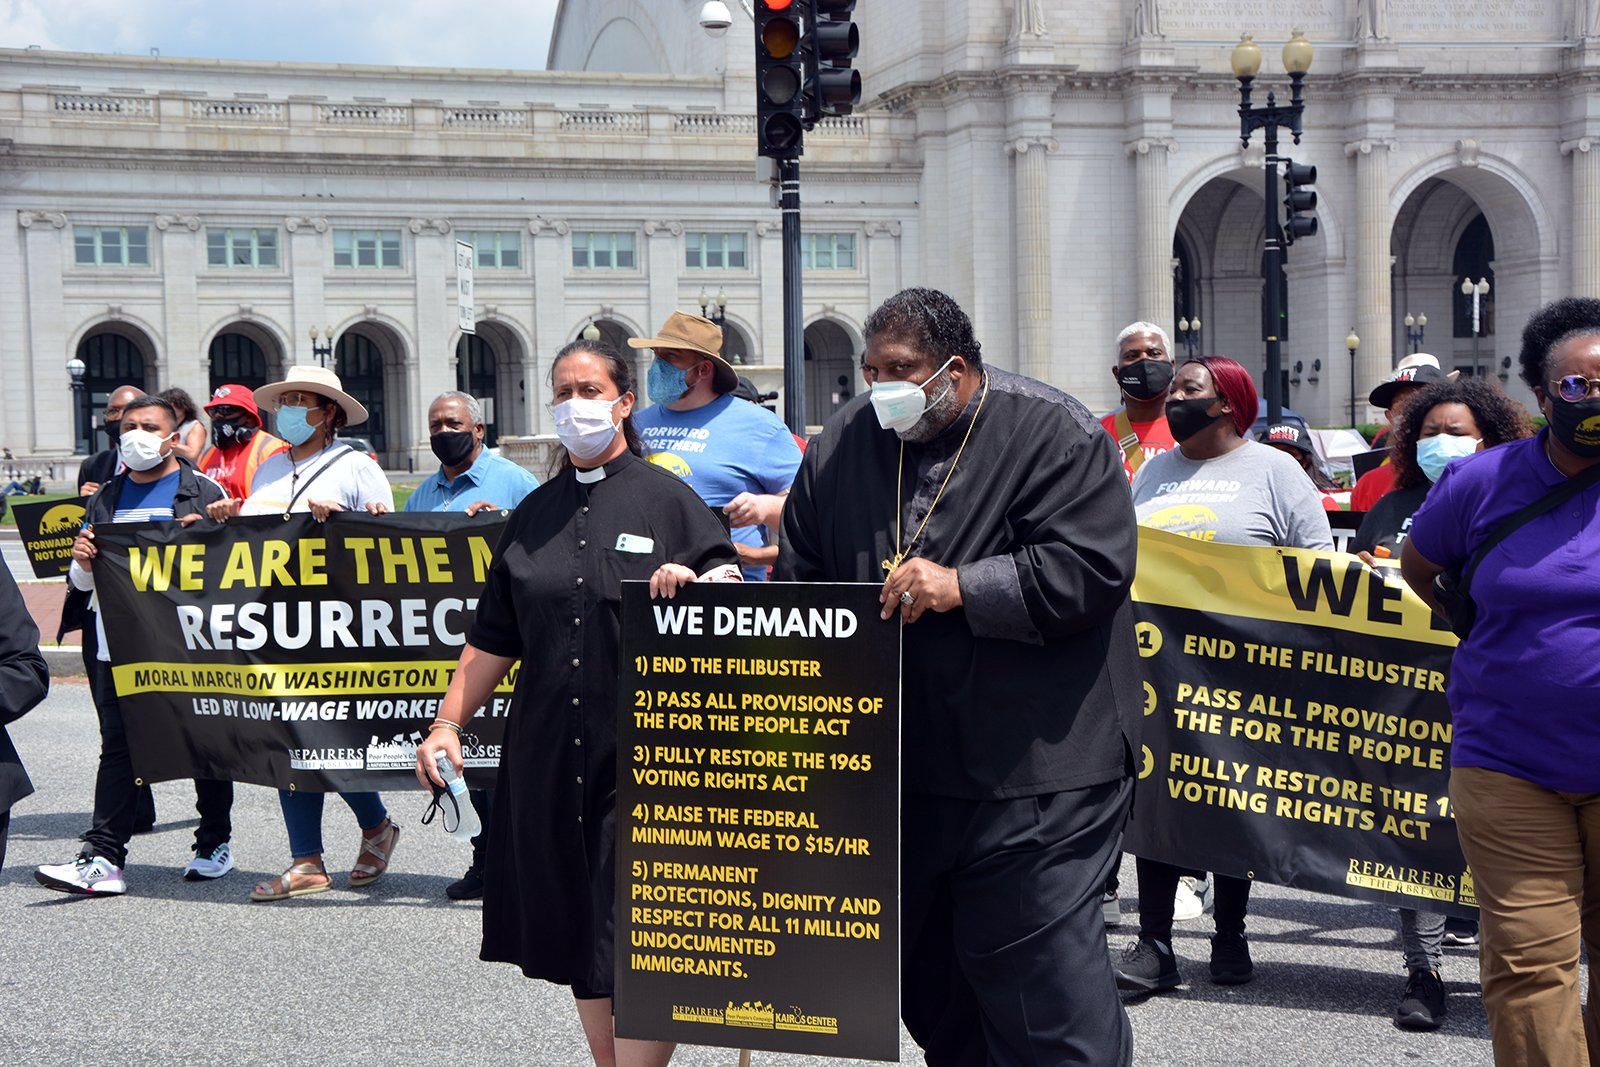 The Rev. Rev. Liz Theoharis, center left, and the Rev. William Barber lead a Poor People's Campaign demonstration march in Washington, Monday, Aug. 2, 2021. RNS photo by Jack Jenkins